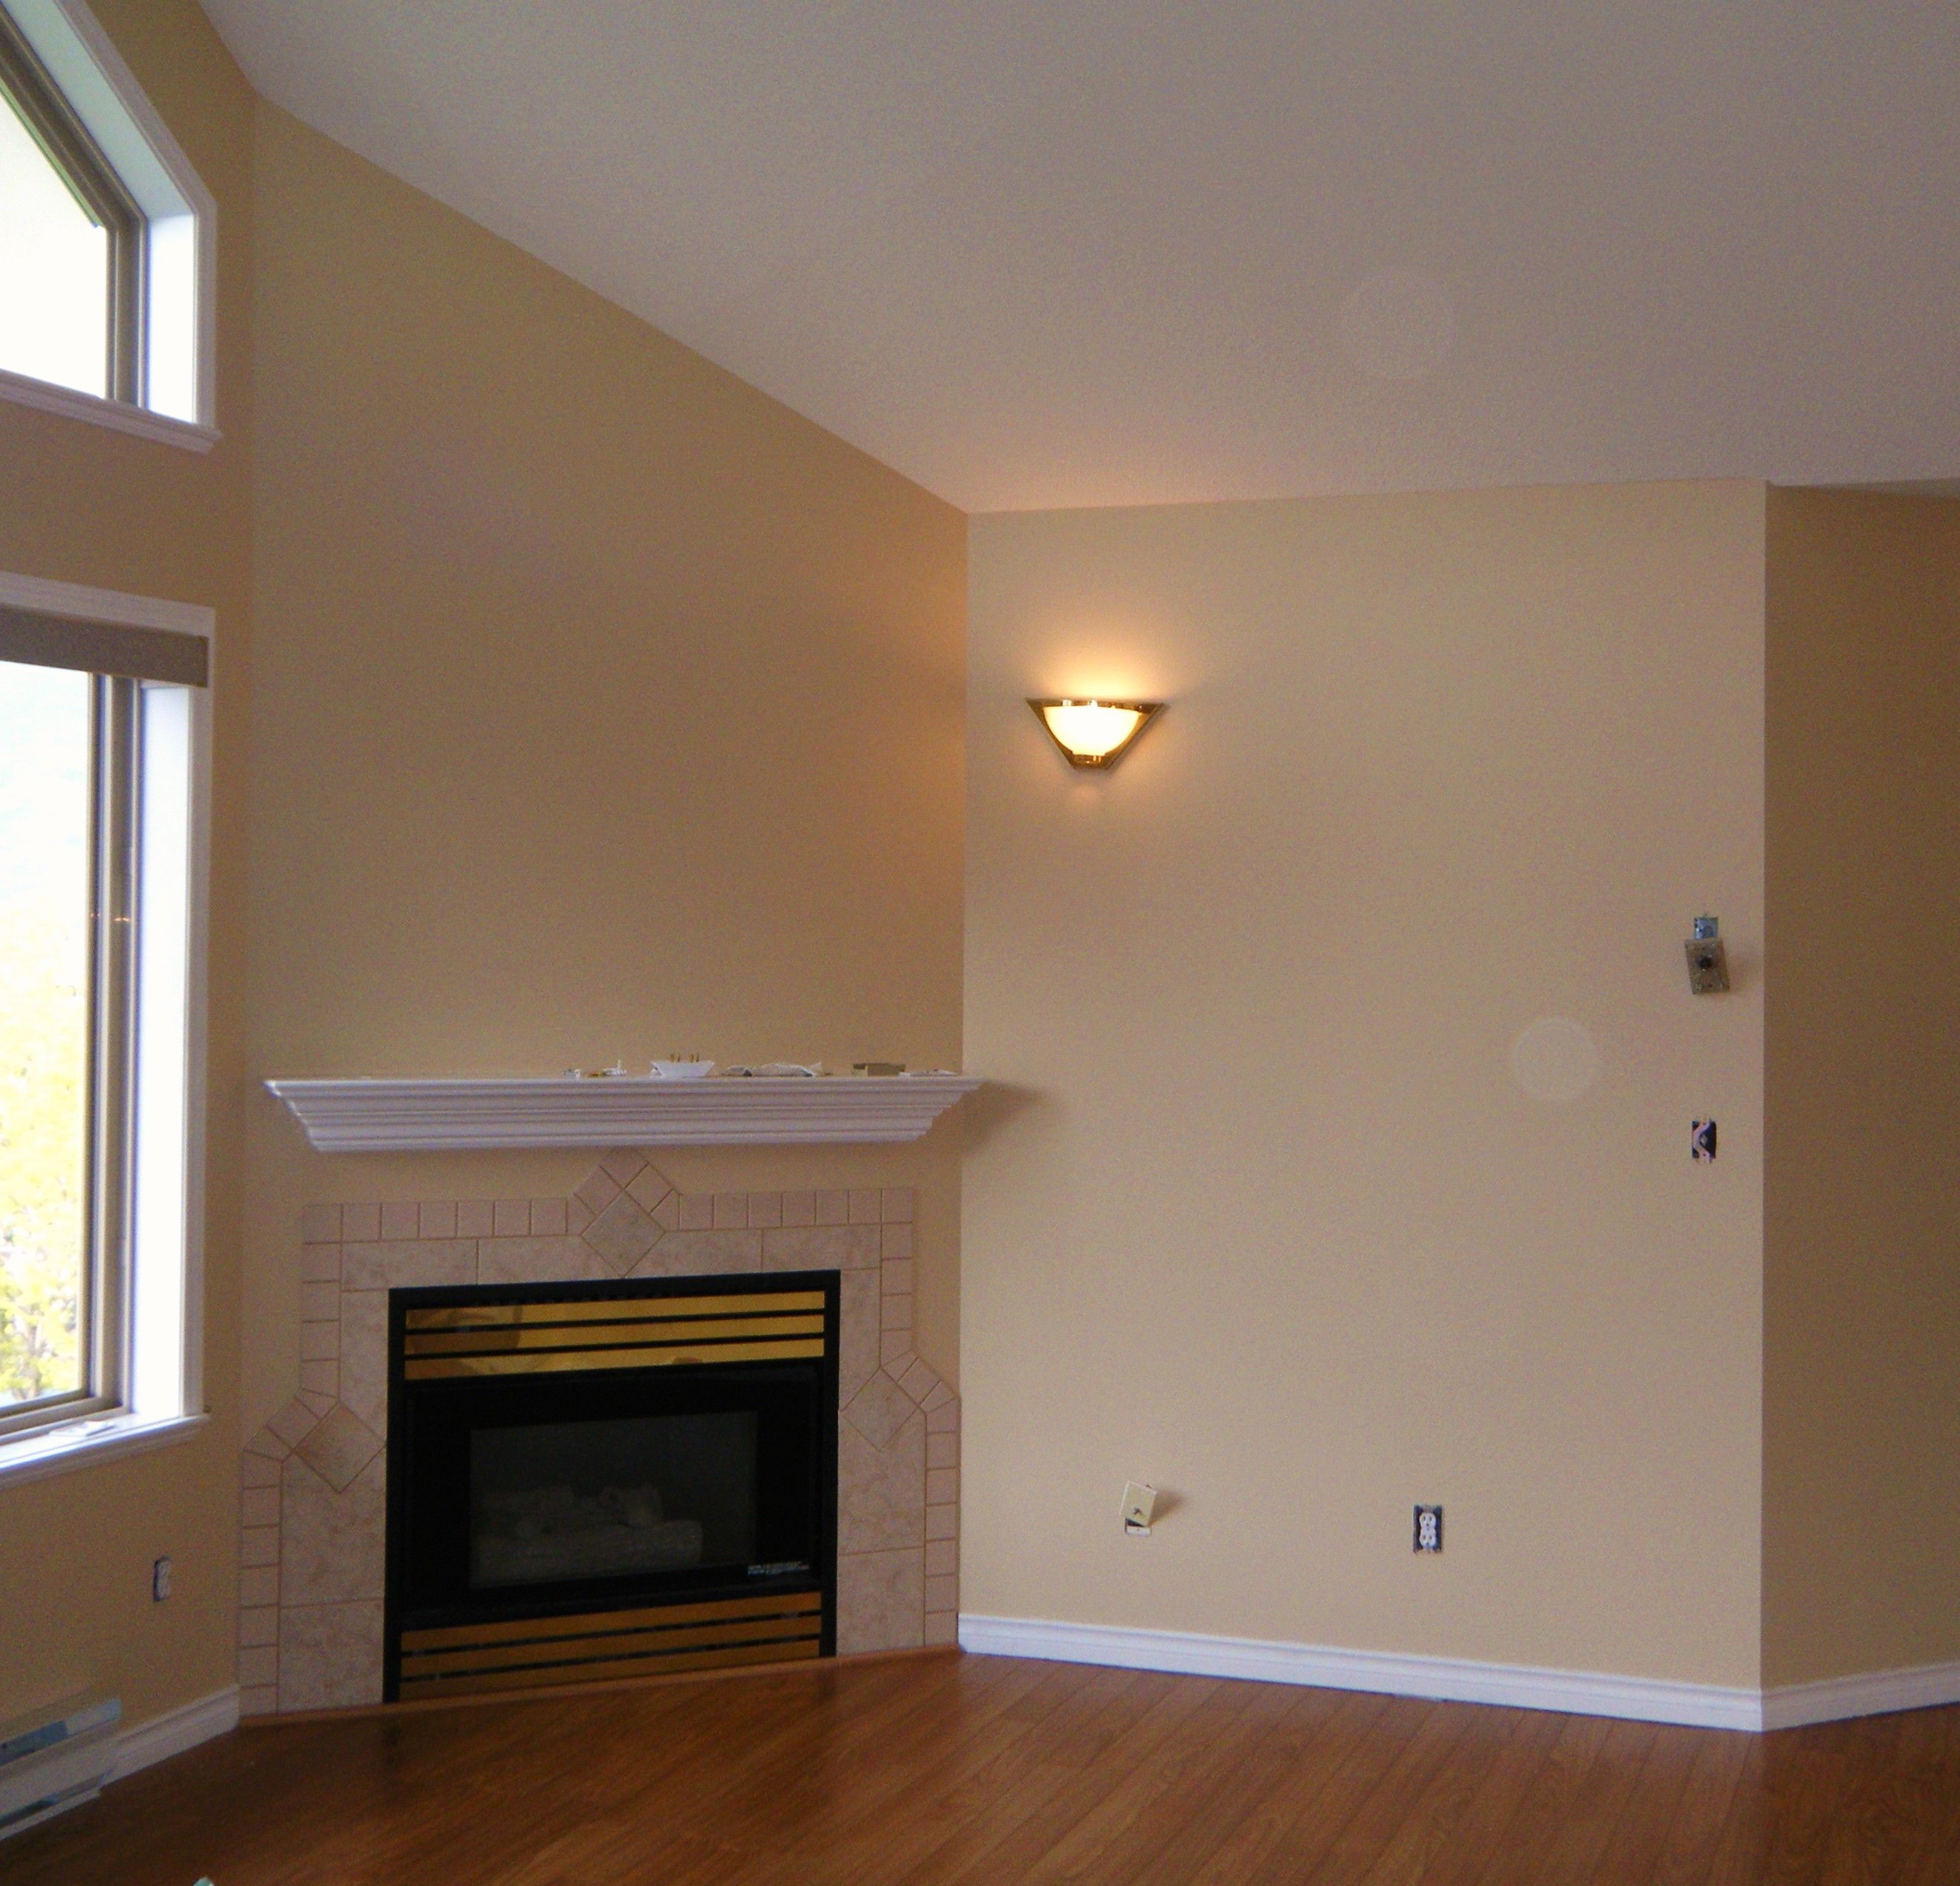 agreeable-benjamin-moore-stone-hearth-in-eggshell-paint-colors ...